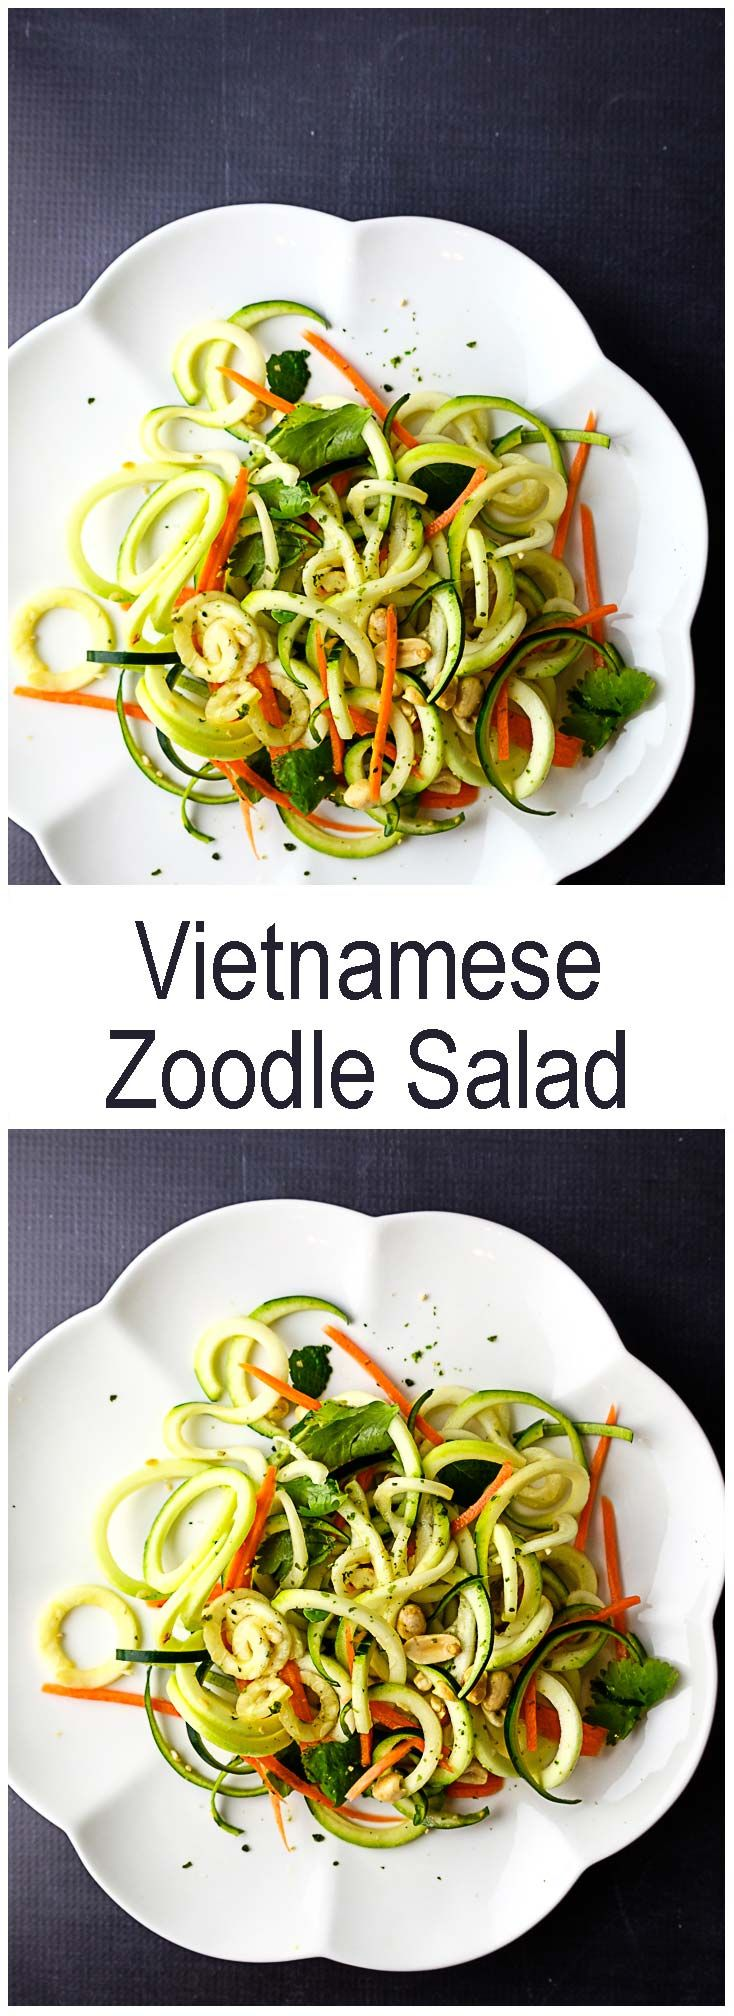 Zoodle Salad - Spiralized zucchini and carrots with Vietnamese flavors from mint and cilantro.  #spiralized #zoodles